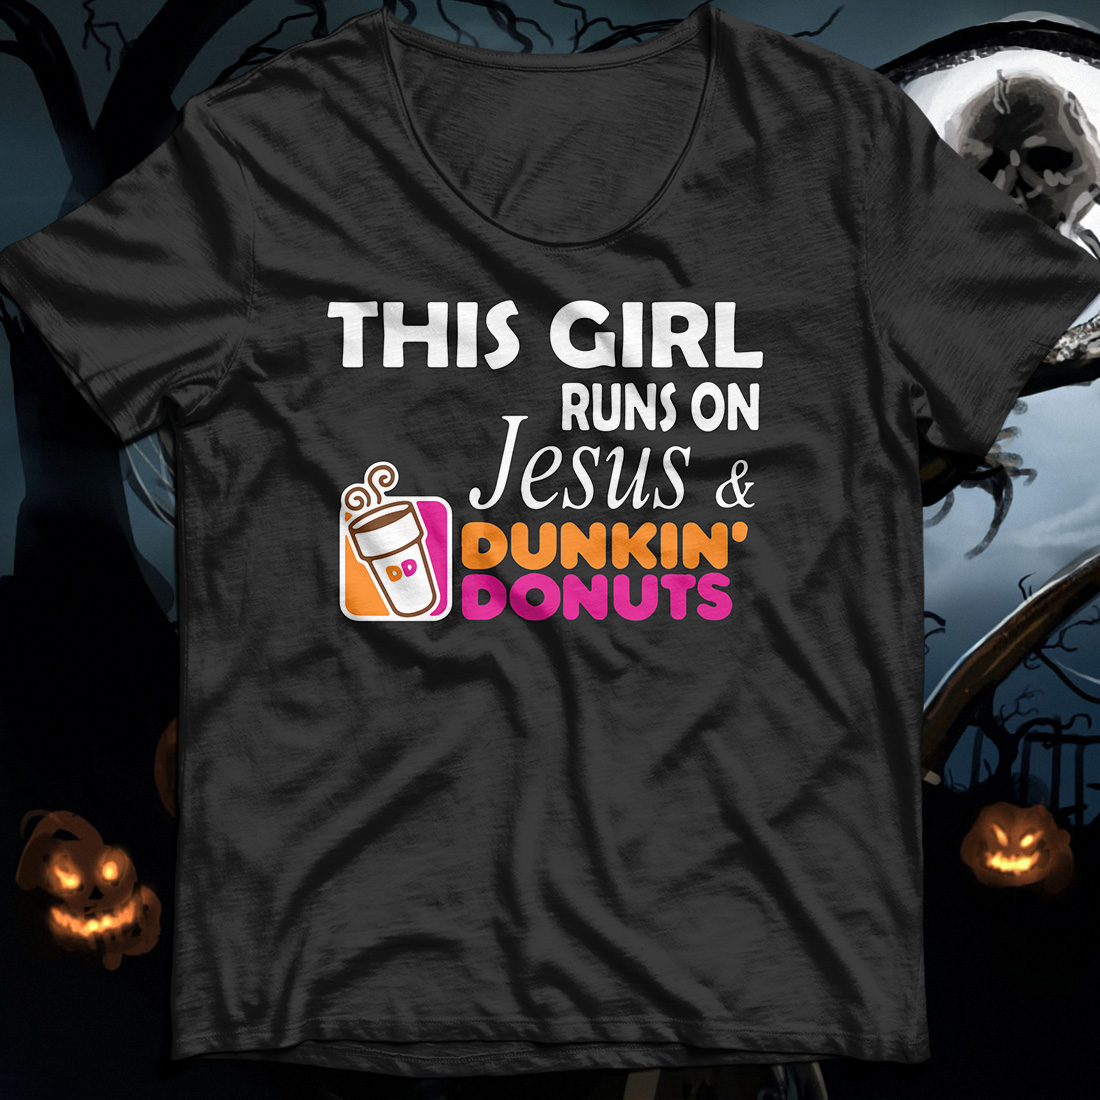 This Girls Run On Jesus And Dunkin' Donuts shirt